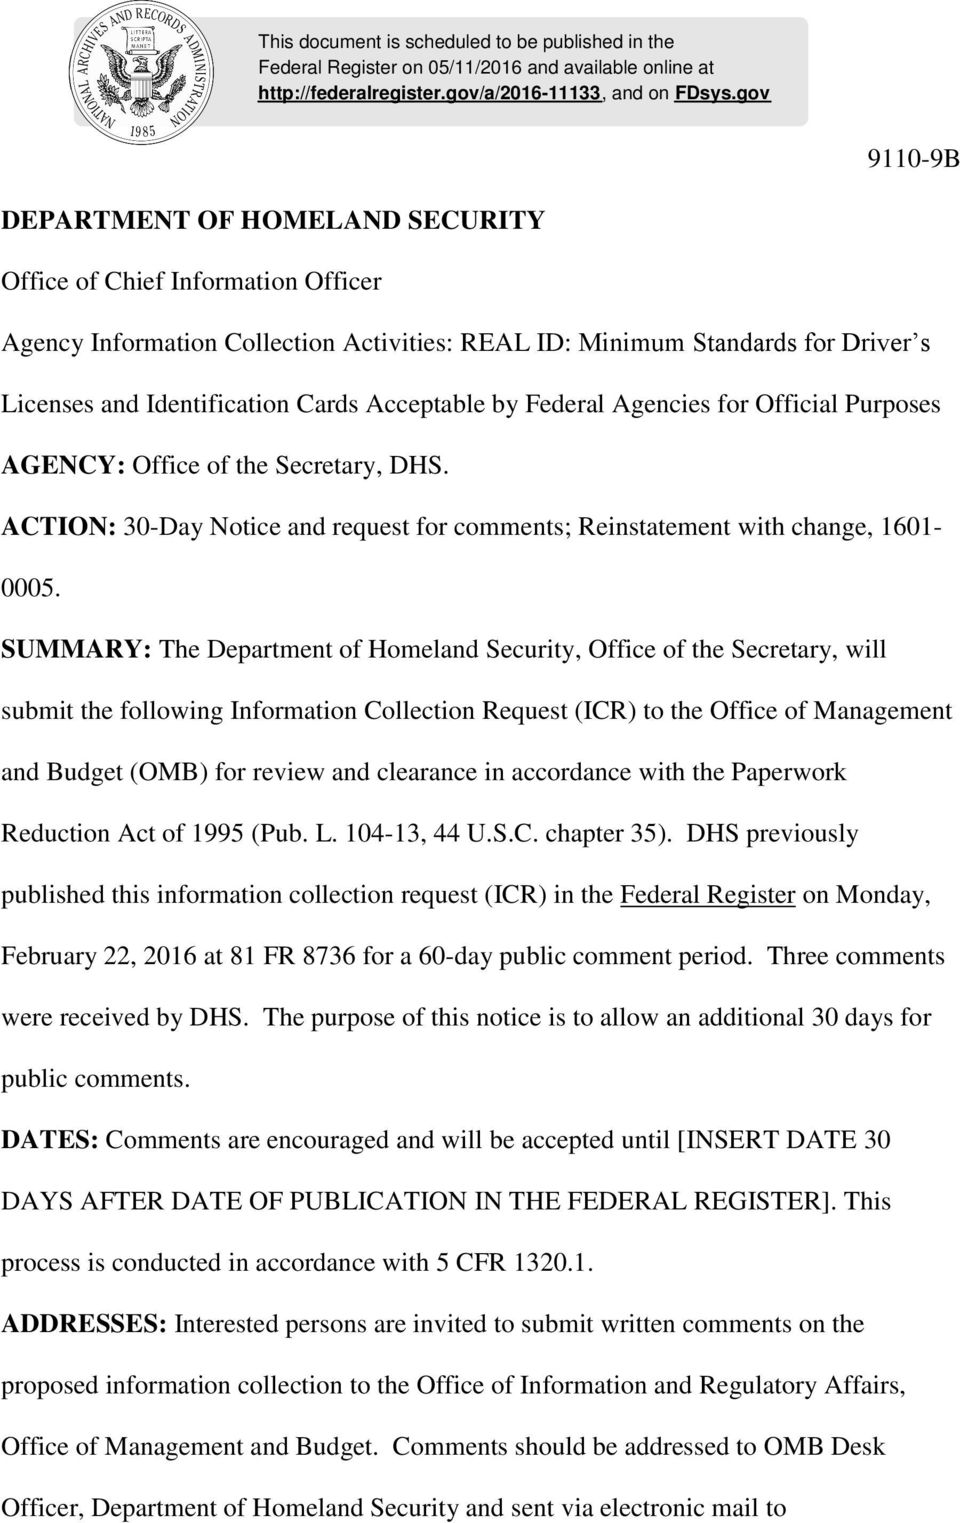 Acceptable by Federal Agencies for Official Purposes AGENCY: Office of the Secretary, DHS. ACTION: 30-Day Notice and request for comments; Reinstatement with change, 1601-0005.